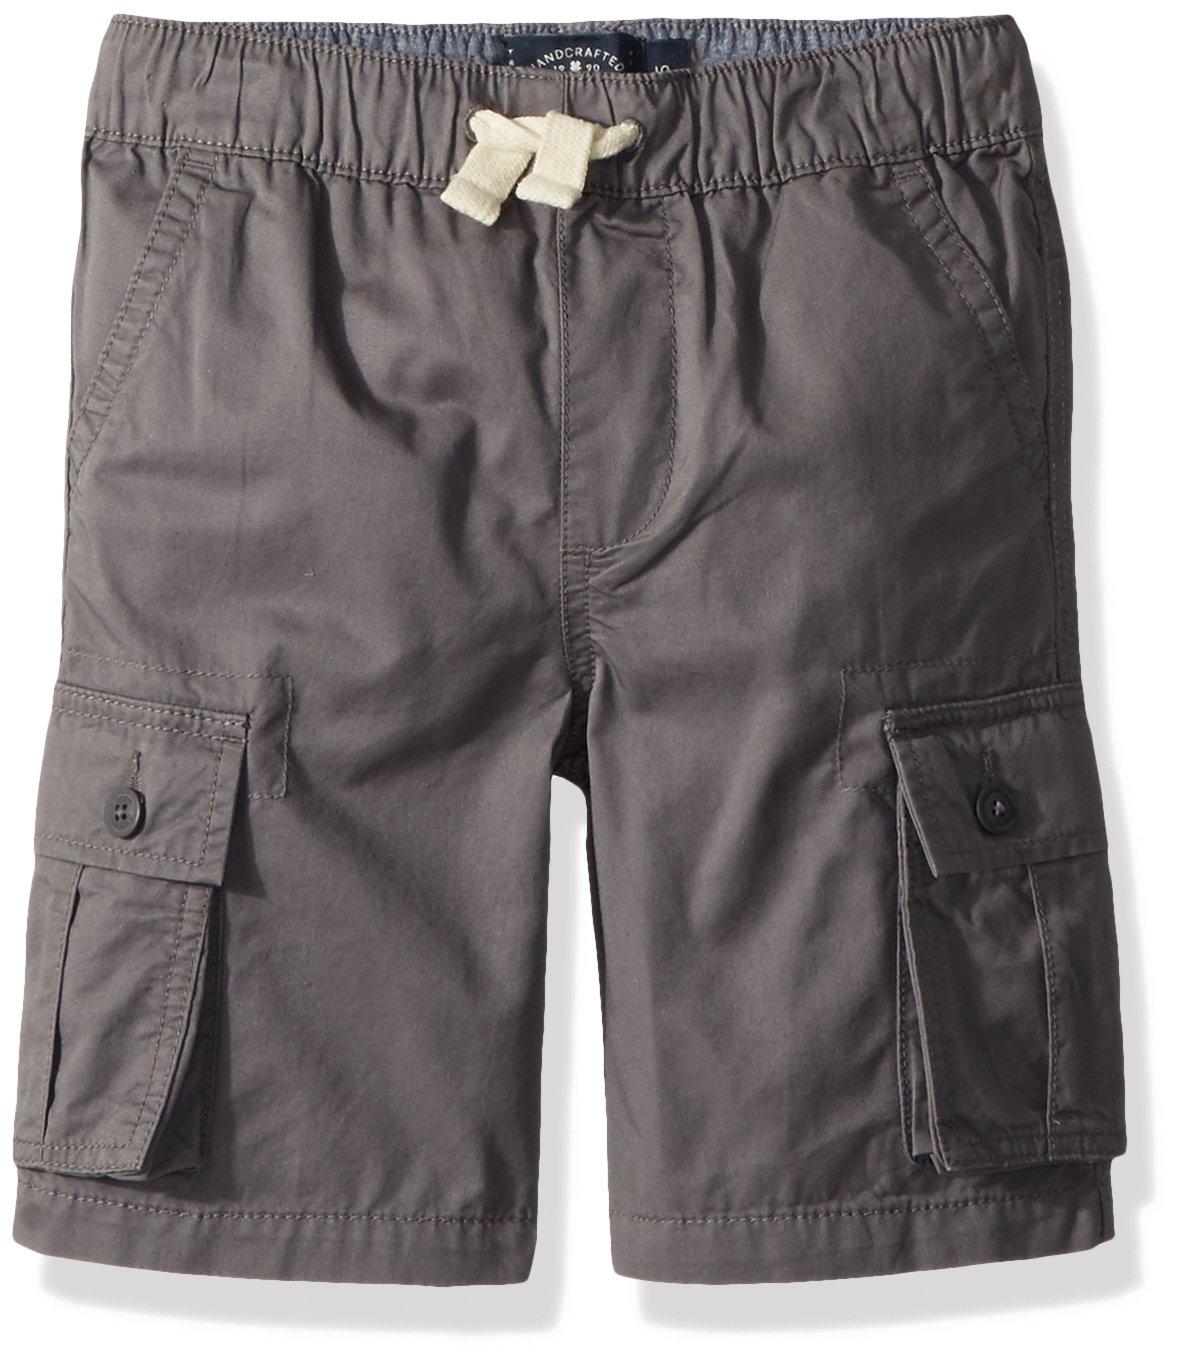 Lucky Brand Boys' Big Cargo Shorts, Pull on As is Grey, X-Large (18/20)